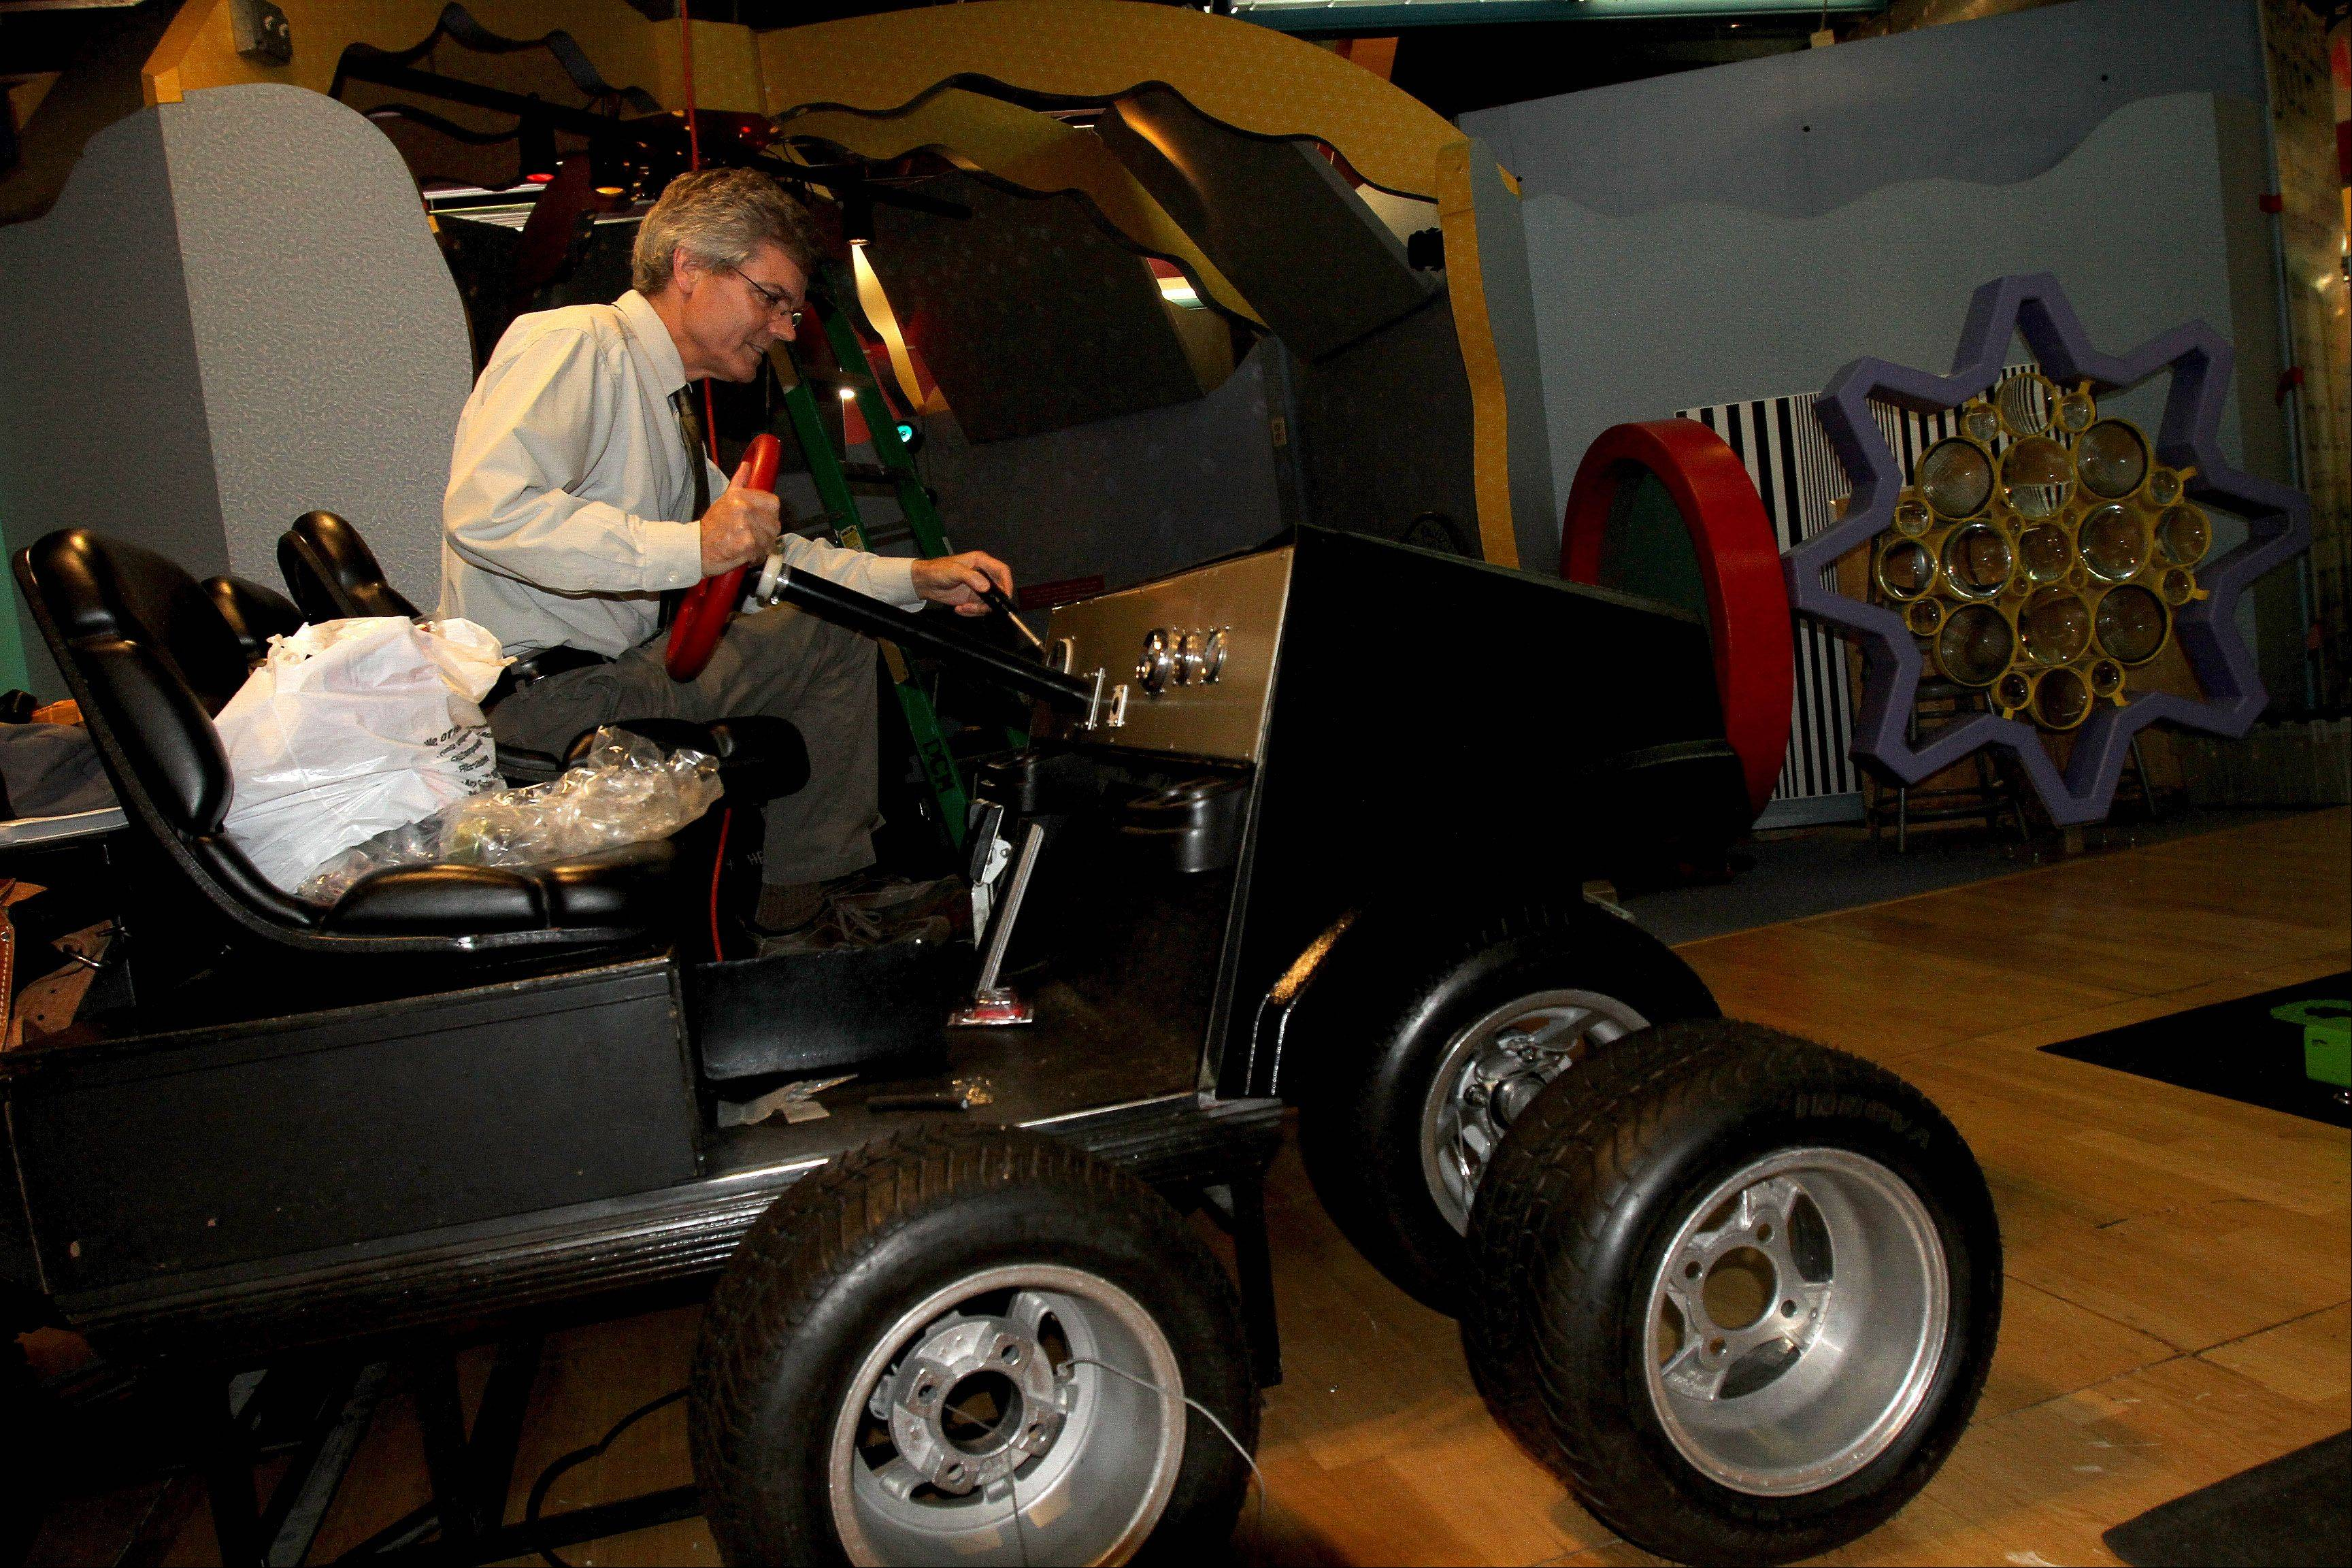 The How People Make Things exhibit invites visitors to get up close with mechanics and production processes. Here, Peter Crabb, director of exhibits, checks out a golf cart on which kids will be able to exchange steering wheels.